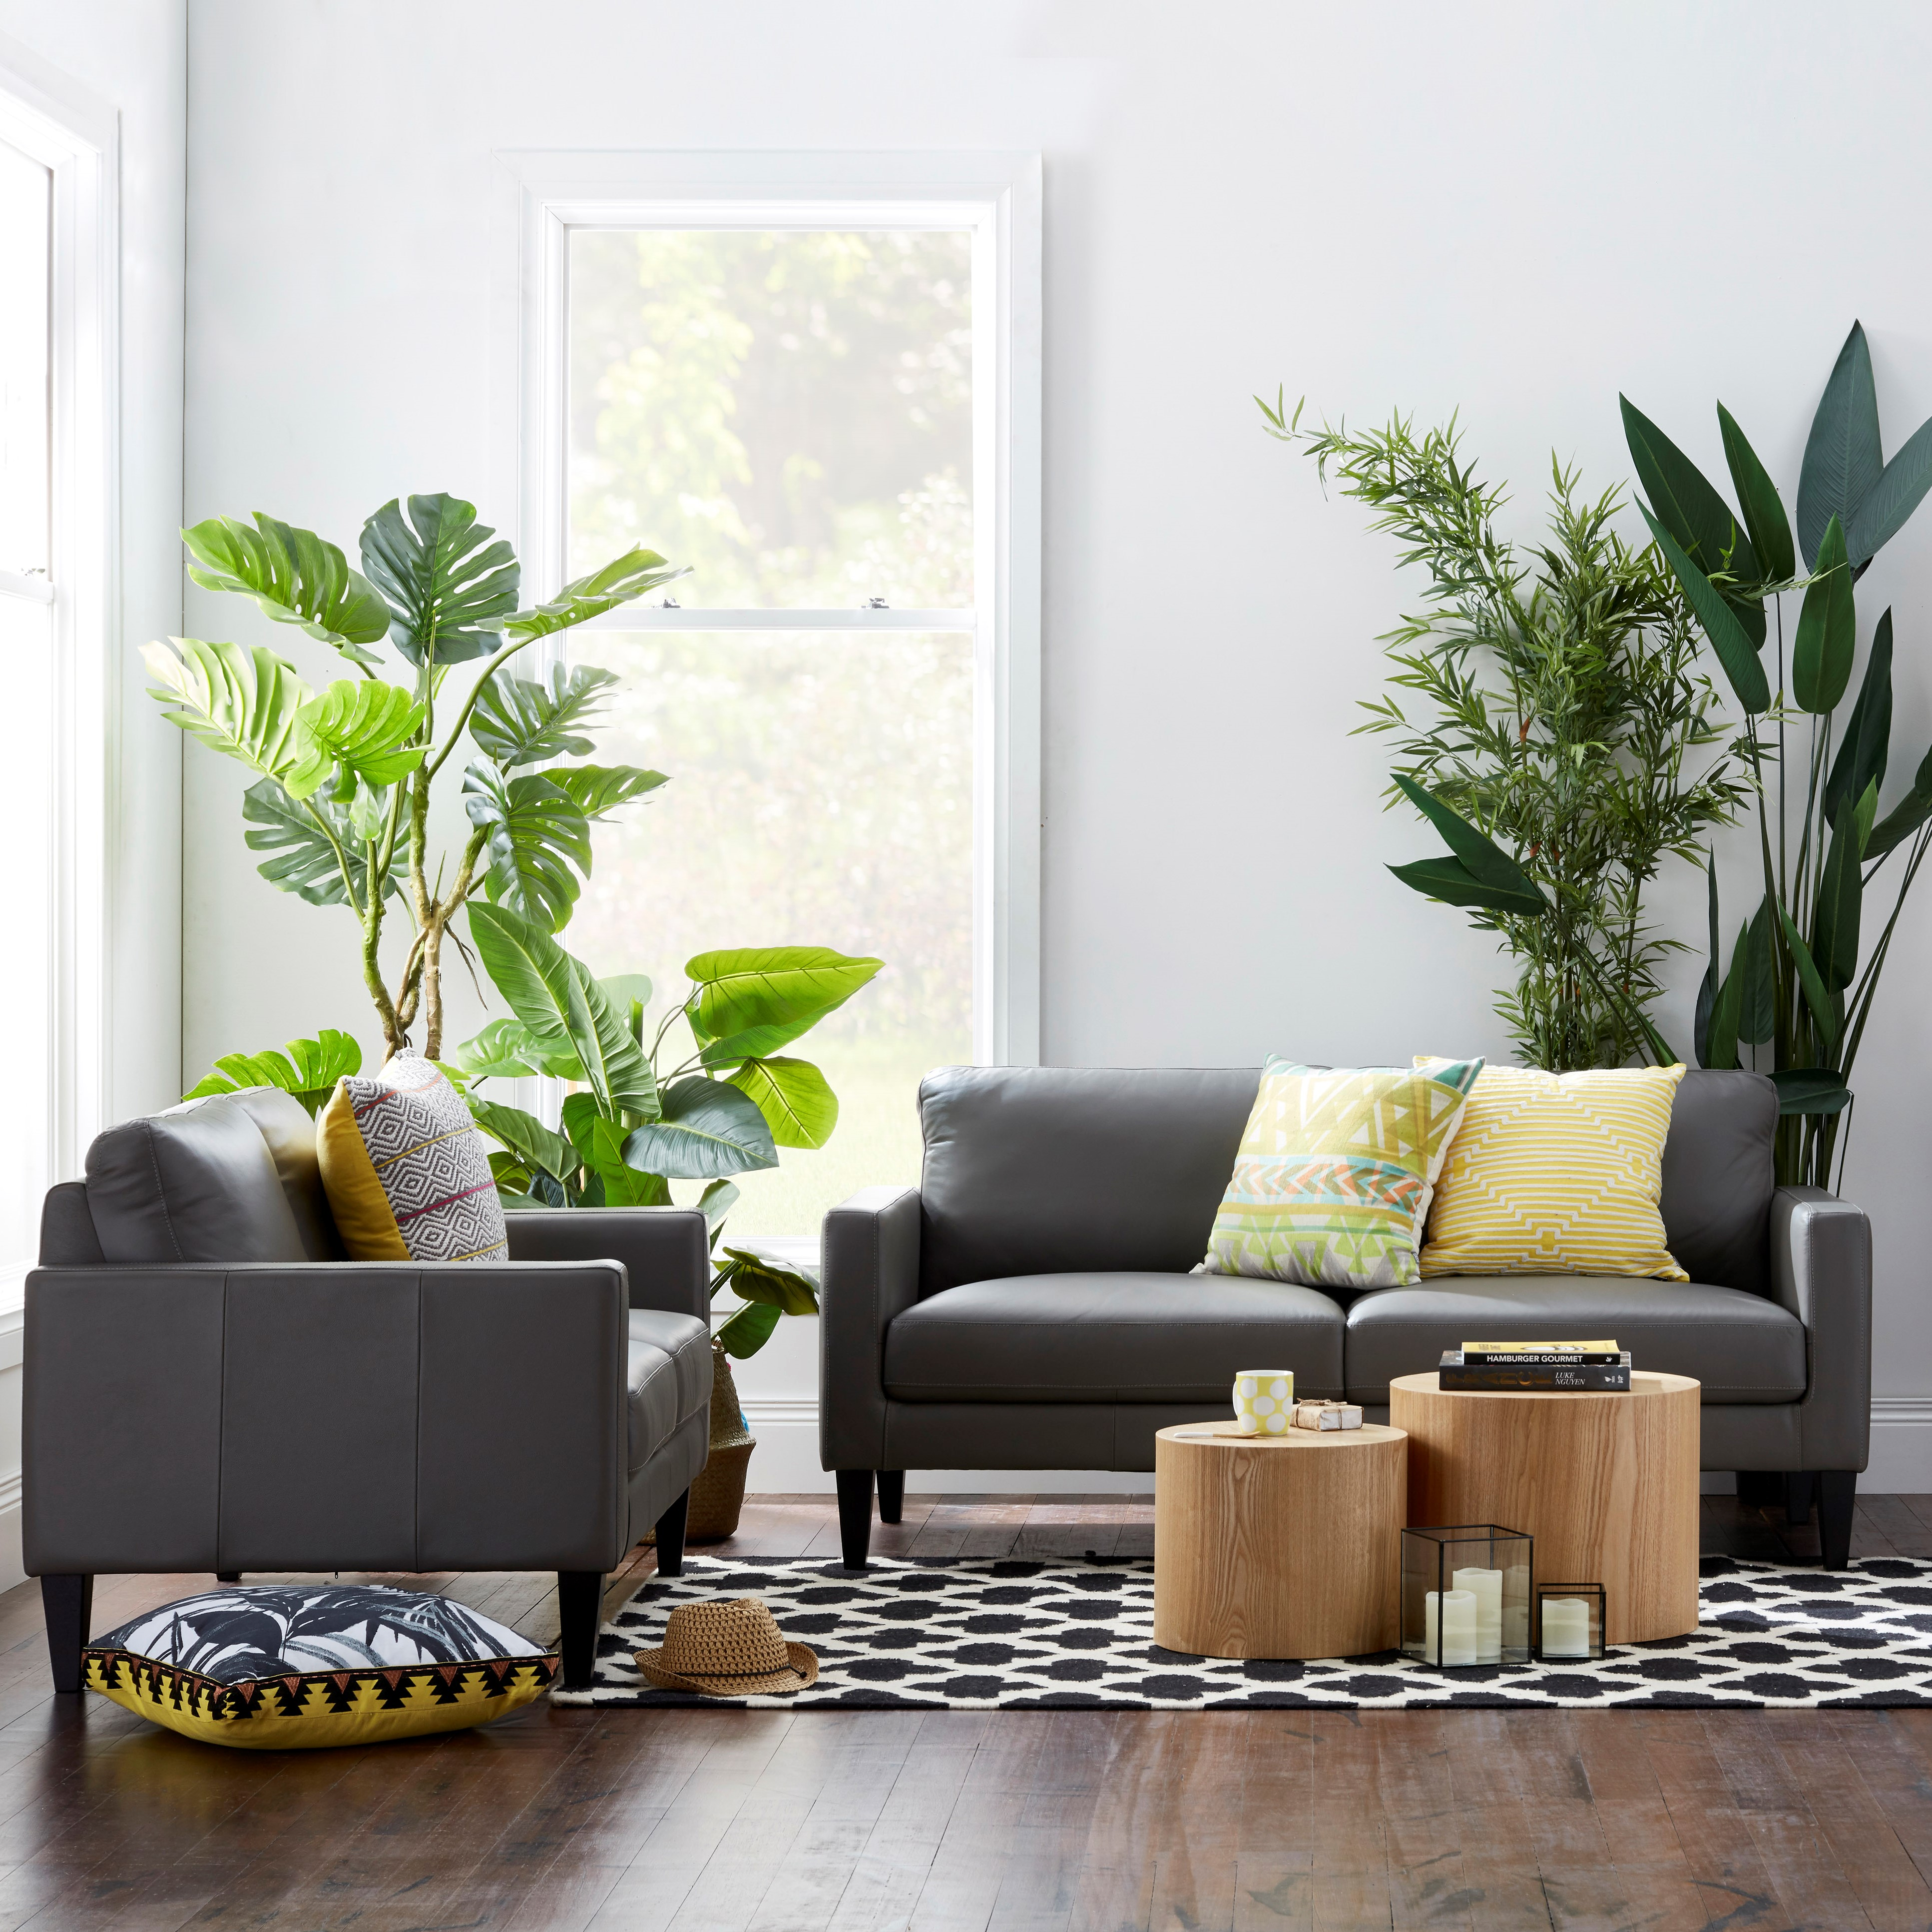 A living room with an armchair, a small couch and a small table in the center